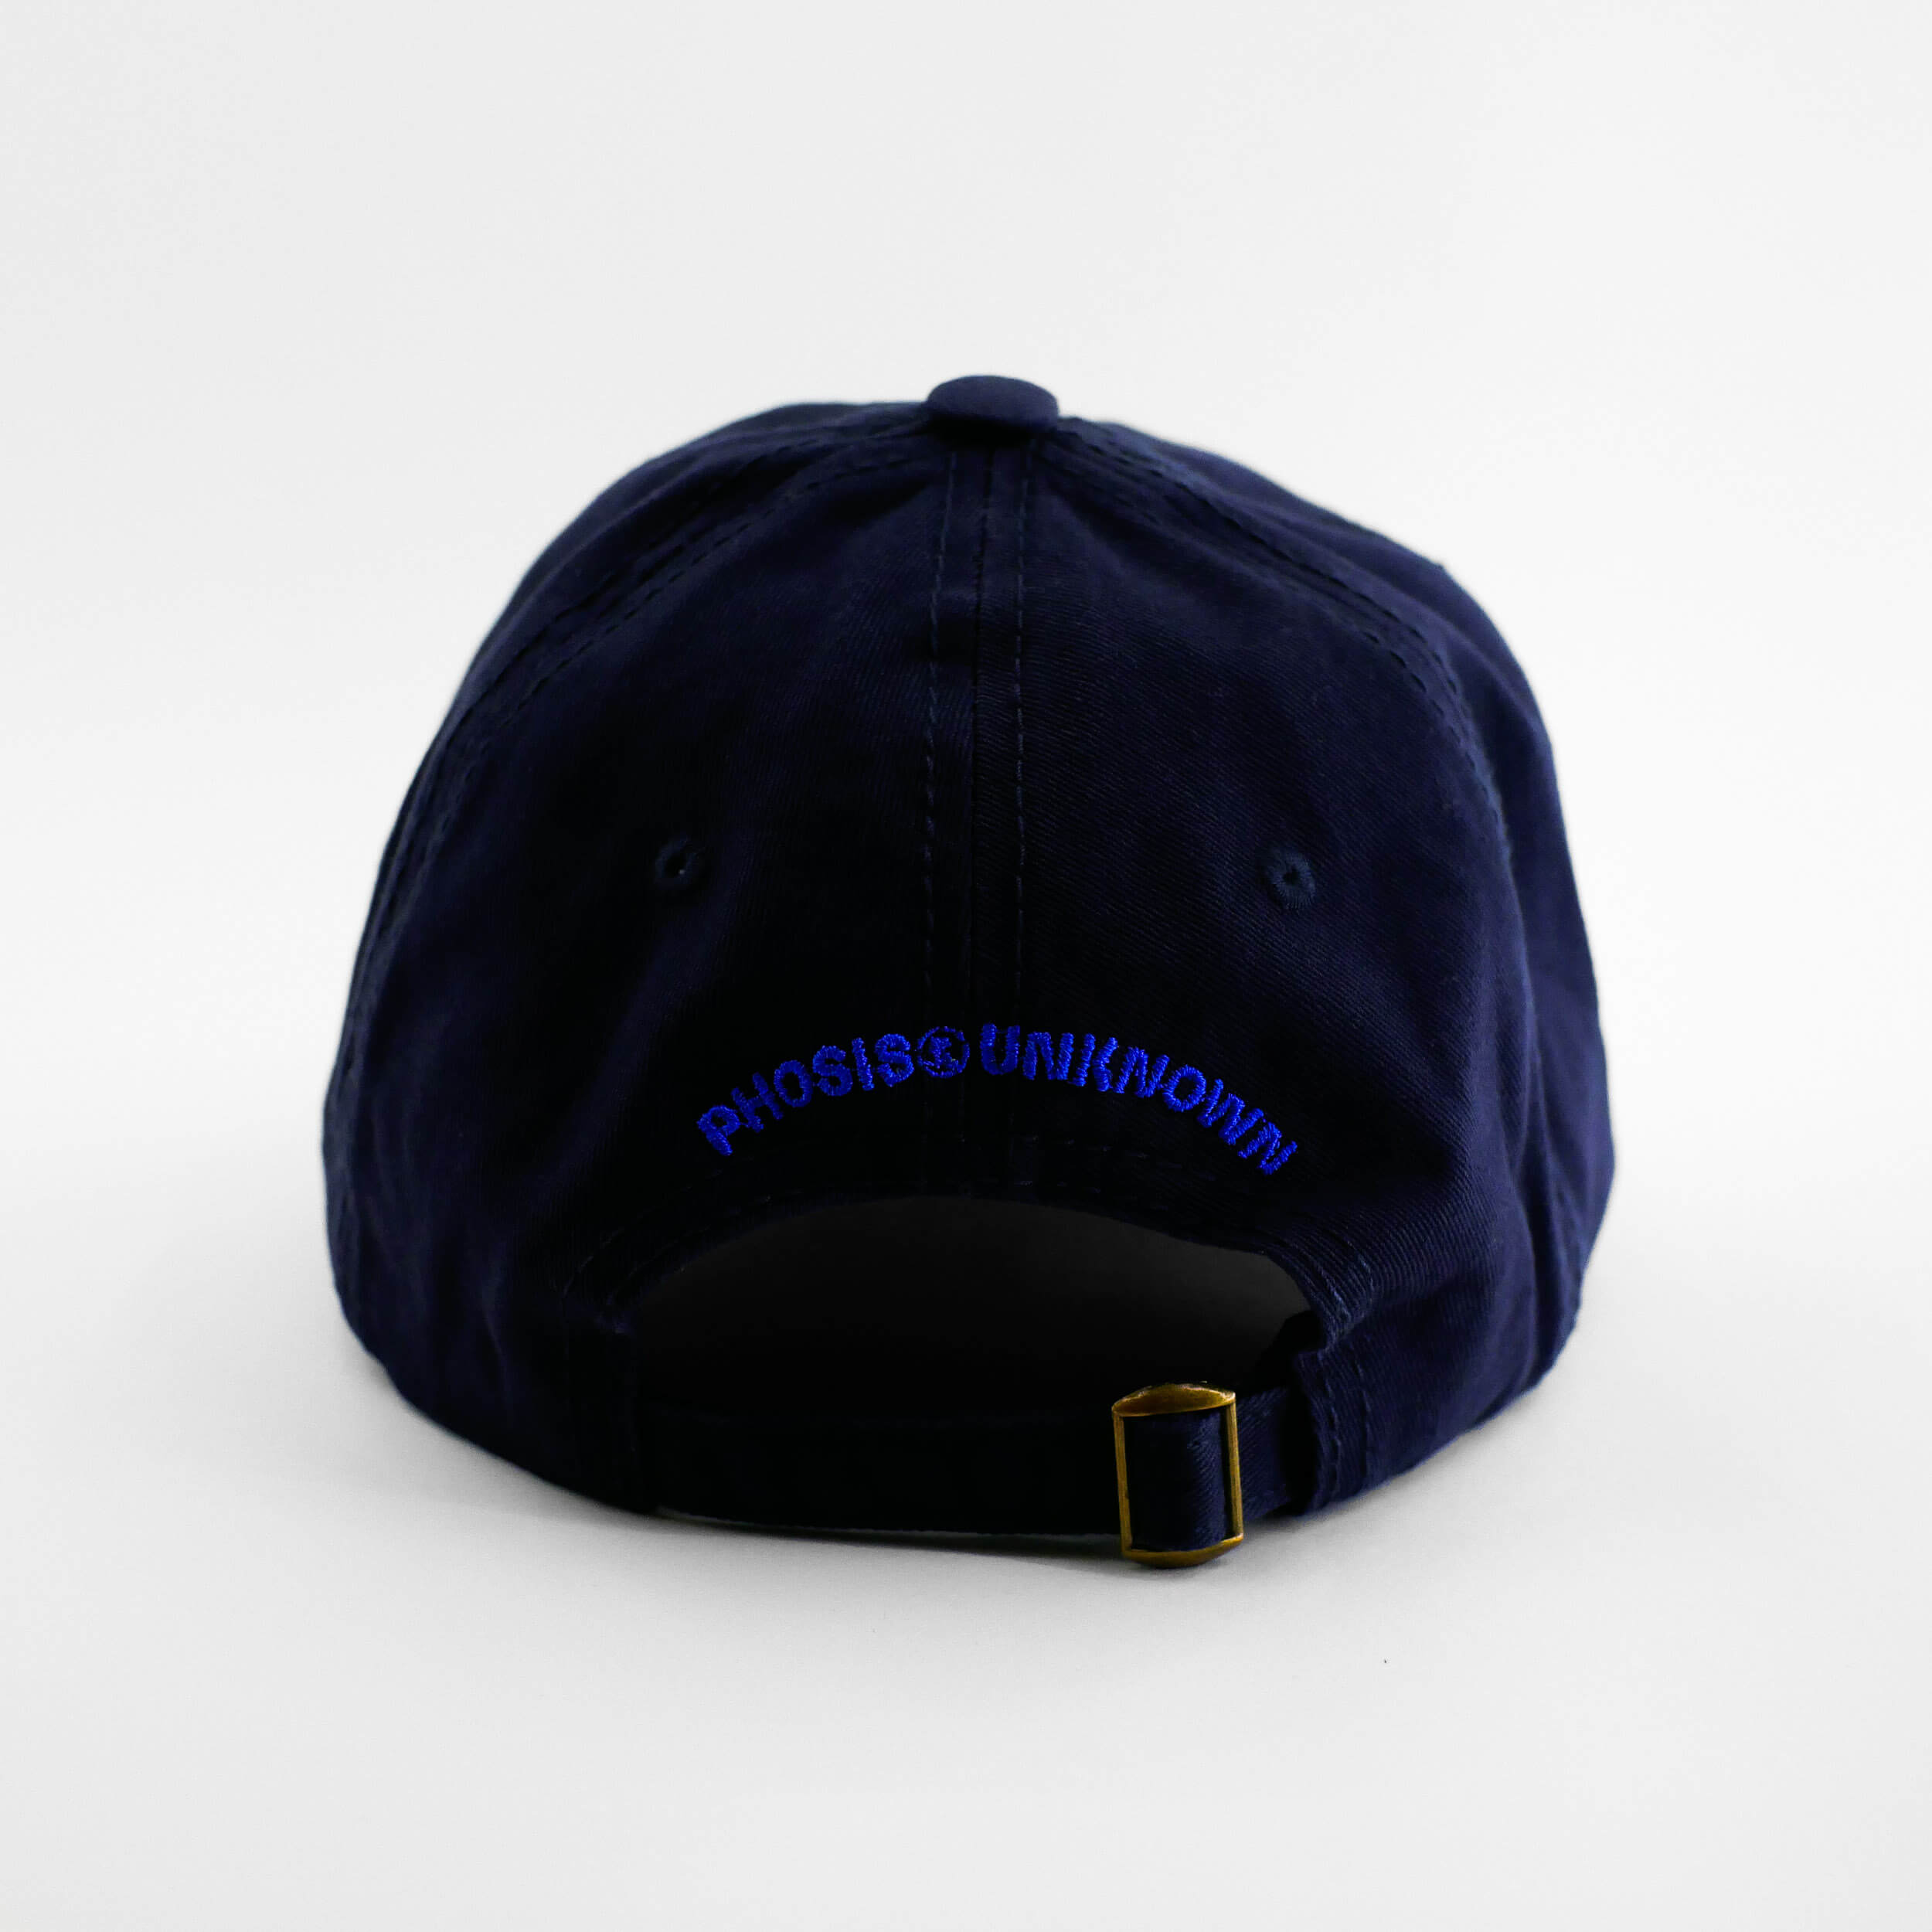 Back view of the embroidered Buttterfly Logo navy blue hat from PHOSIS Clothing